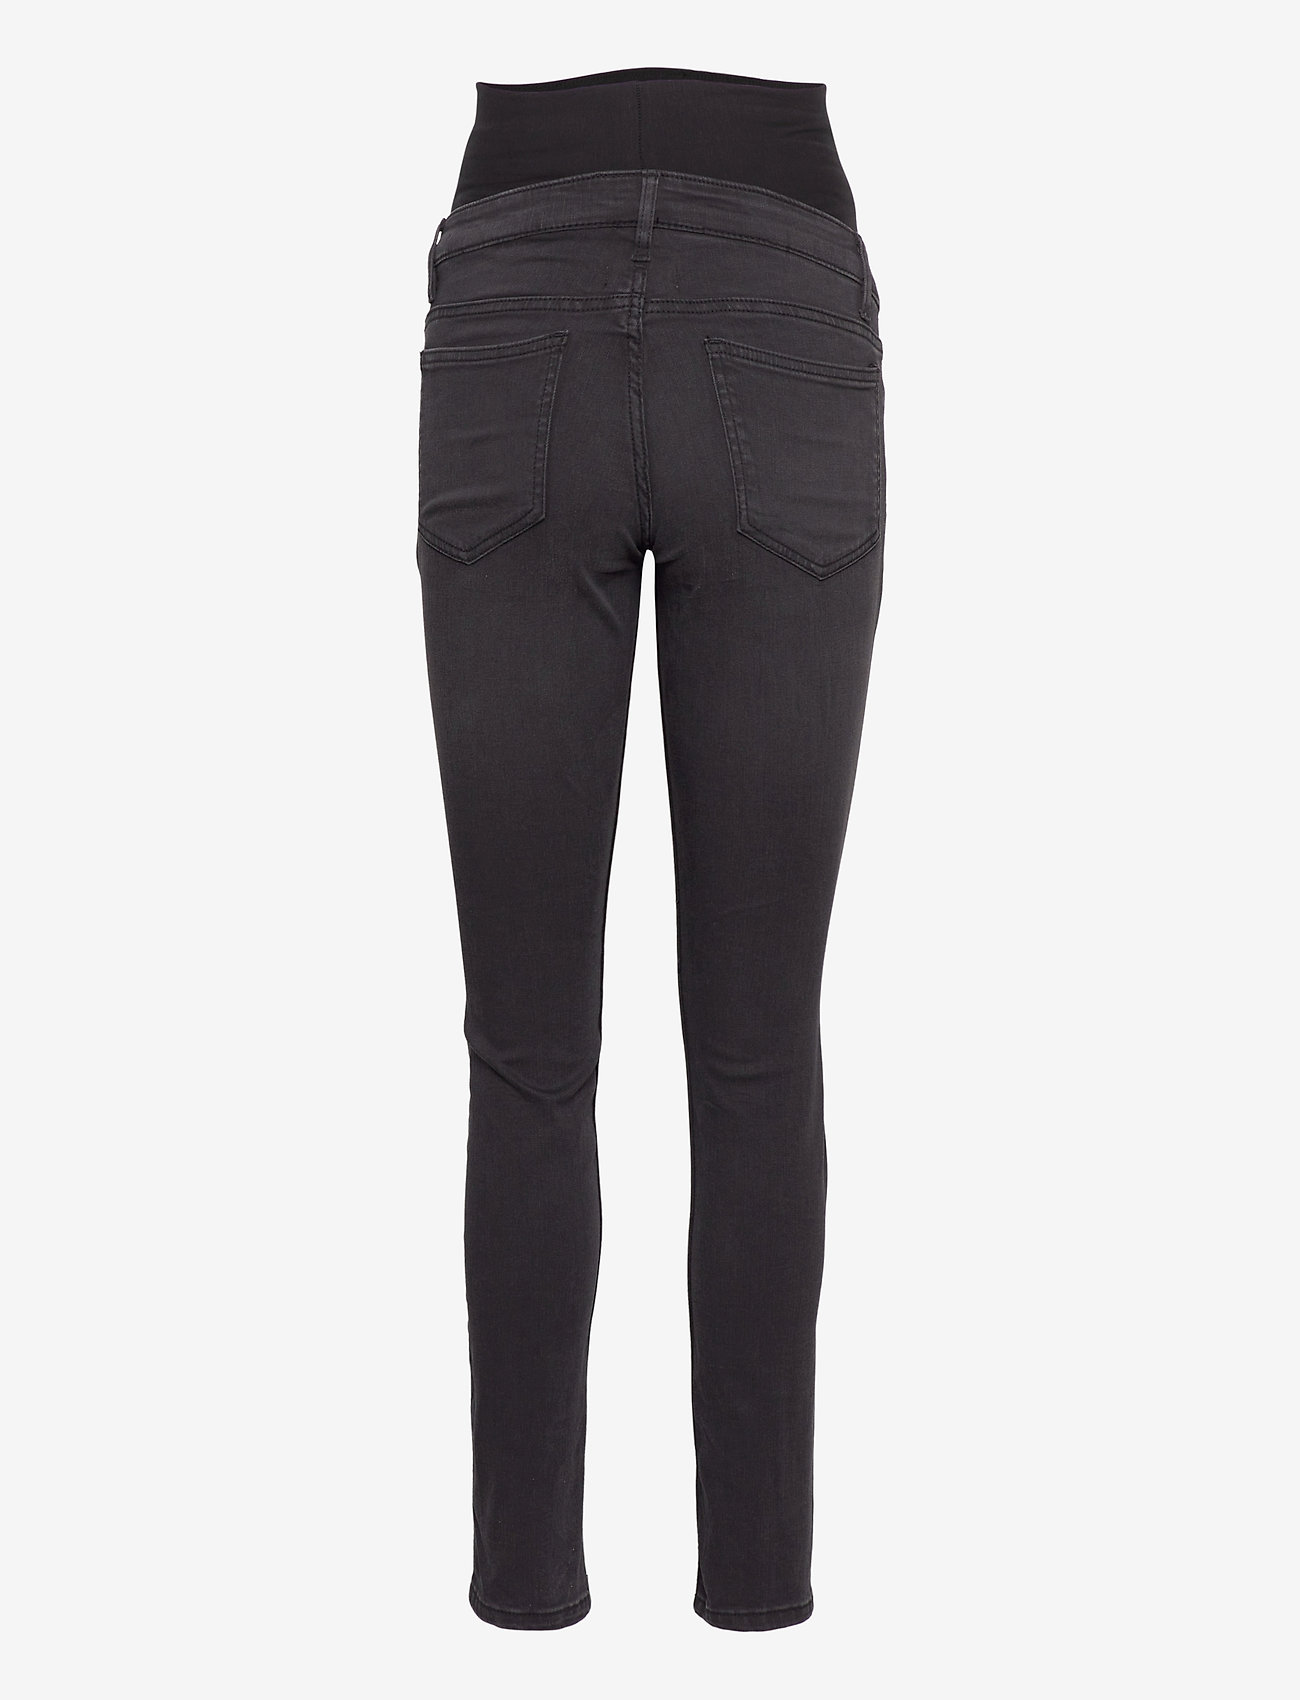 Lindex - Trs denim MOM Tova soft black - mom jeans - black - 1